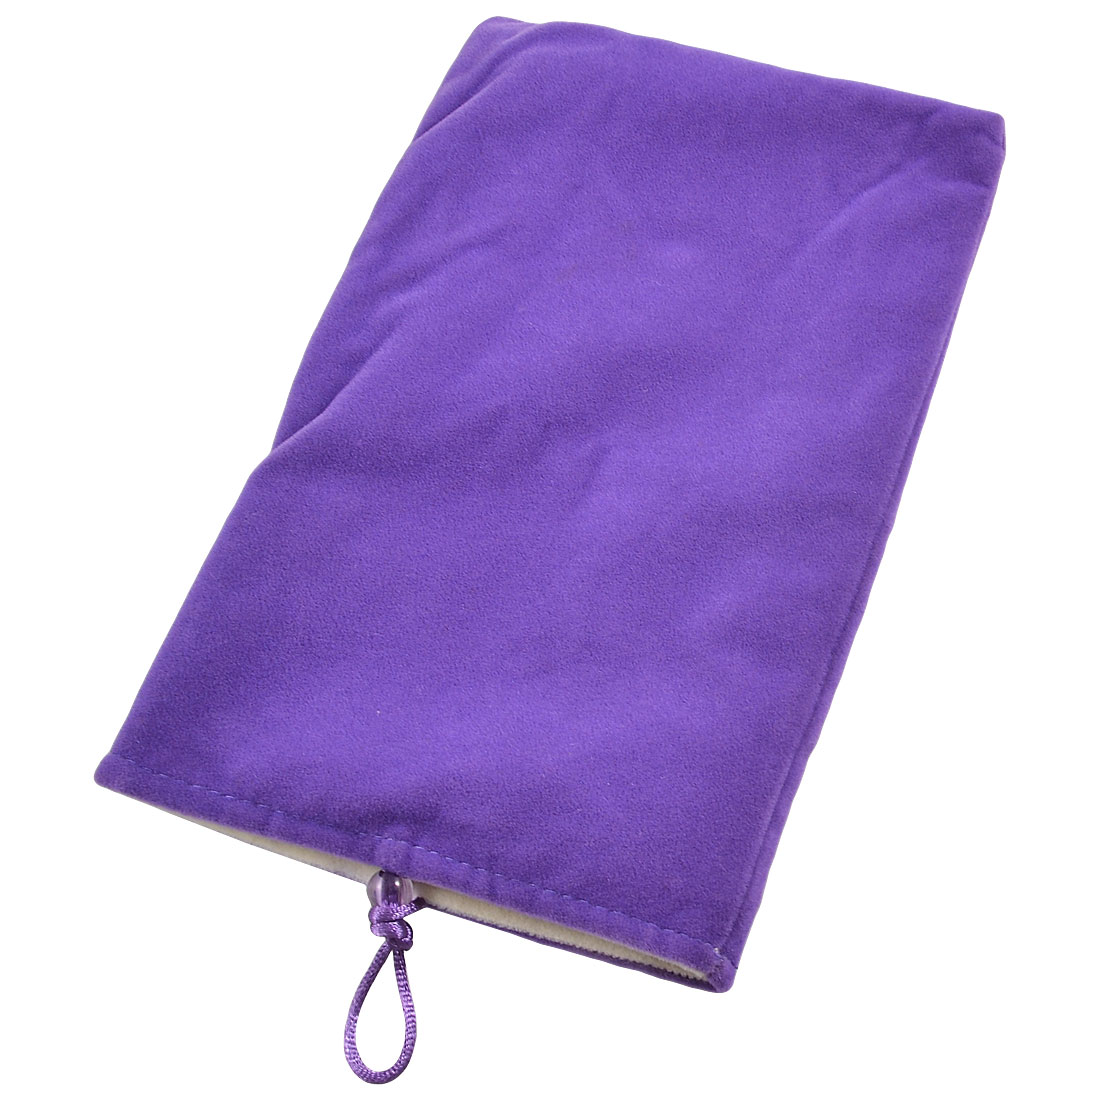 "Bead Button Closure 7"" Tablet PC MID GPS Pouch Case Sleeve Bag Purple"